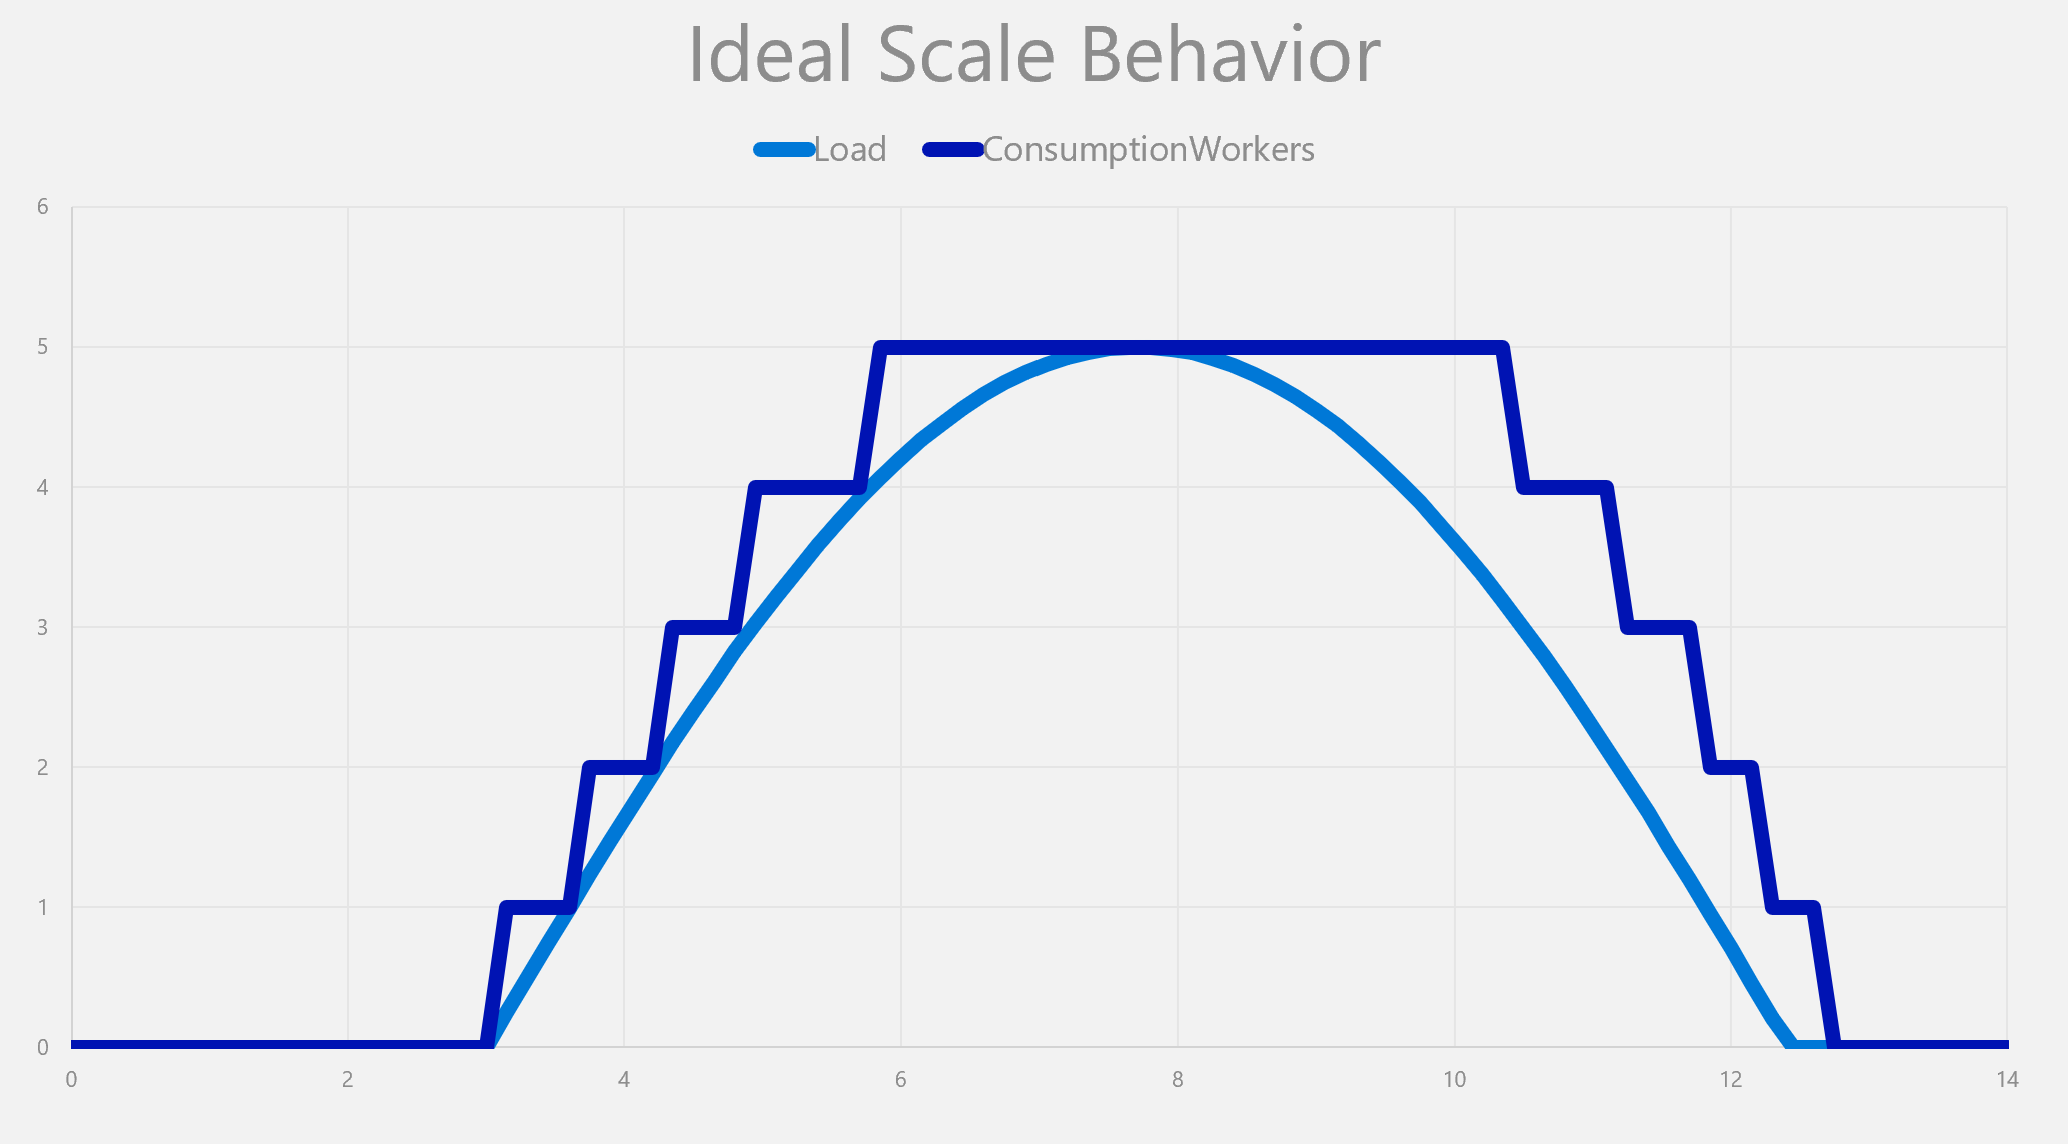 Ideal Scale Behavior